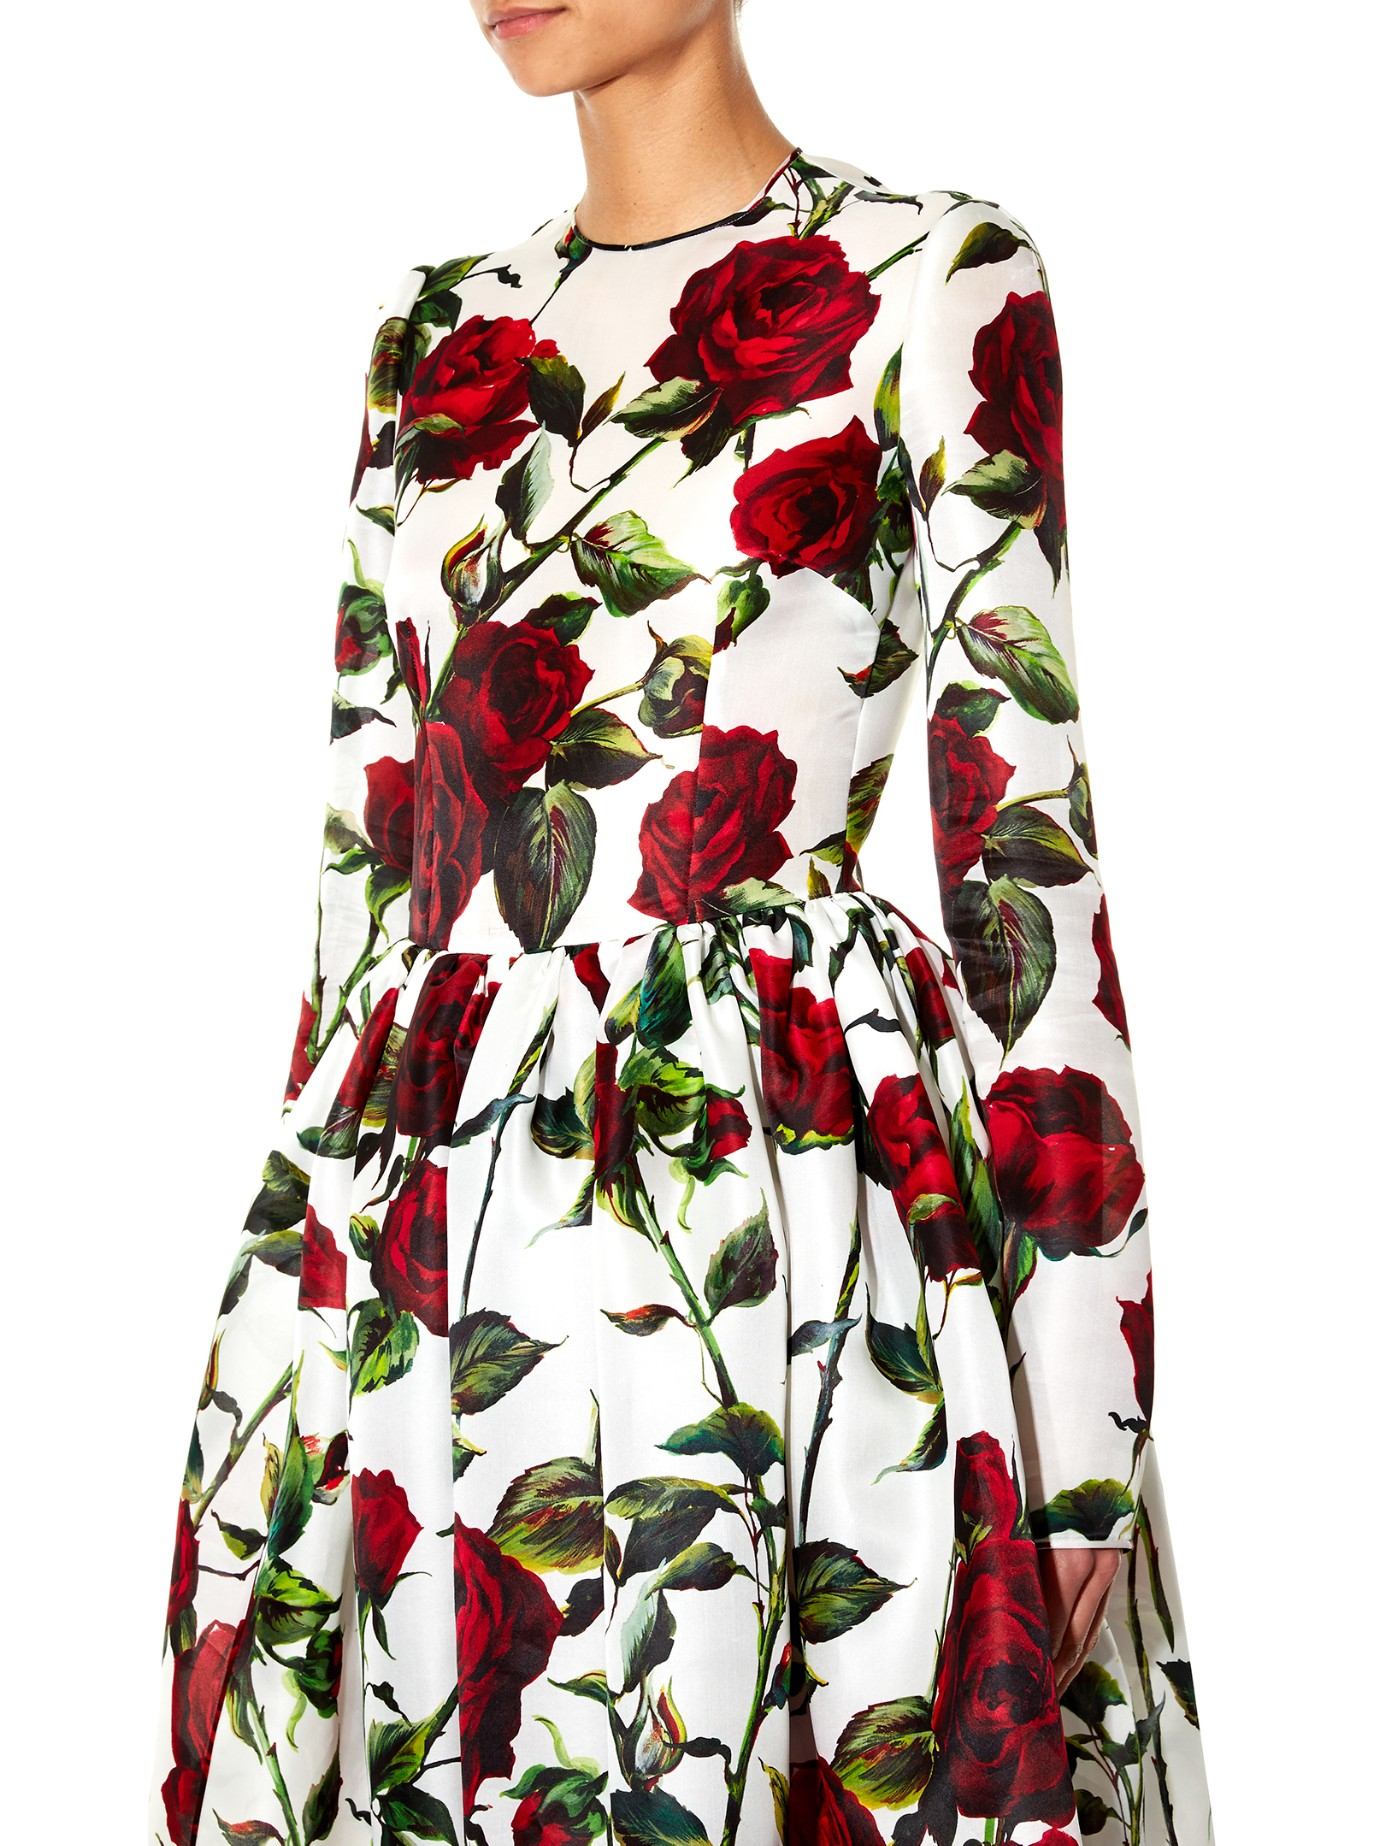 cold shoulder rose print dress - Multicolour Dolce & Gabbana The Cheapest Online Buy Cheap Visit New Outlet With Paypal Order Online nHpuUUoRZH